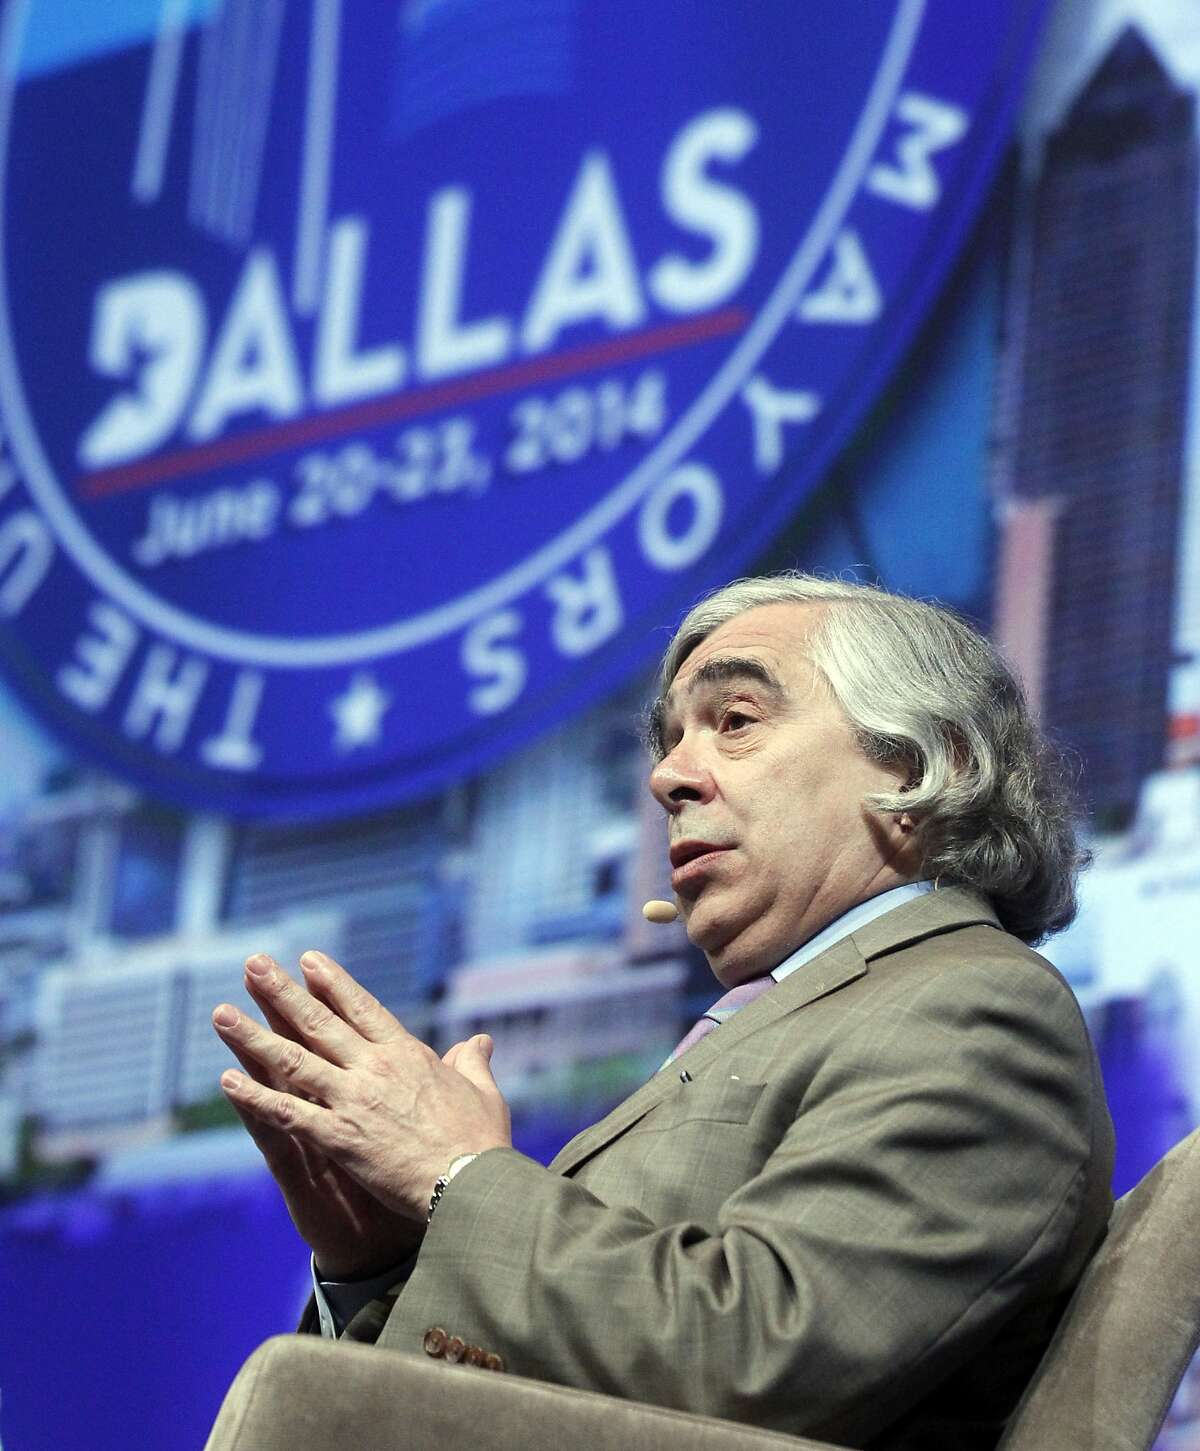 Ernest Moniz, secretary, United States Dept. of Energy, discusses climate protection at the U.S. Conference of Mayors in Dallas, on Sunday, June 22, 2014.